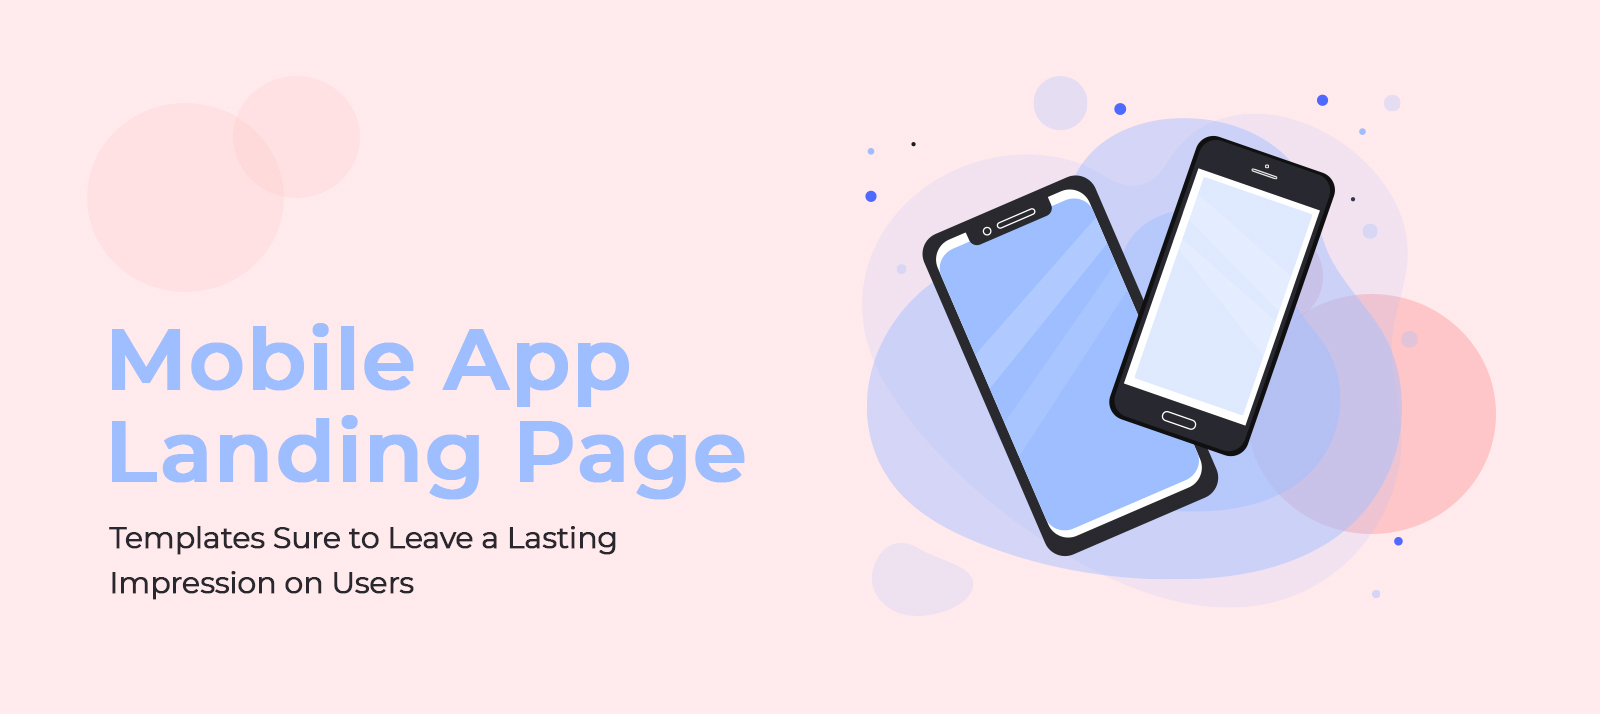 Mobile App Landing Page Templates Sure to Leave a Lasting Impression on Users